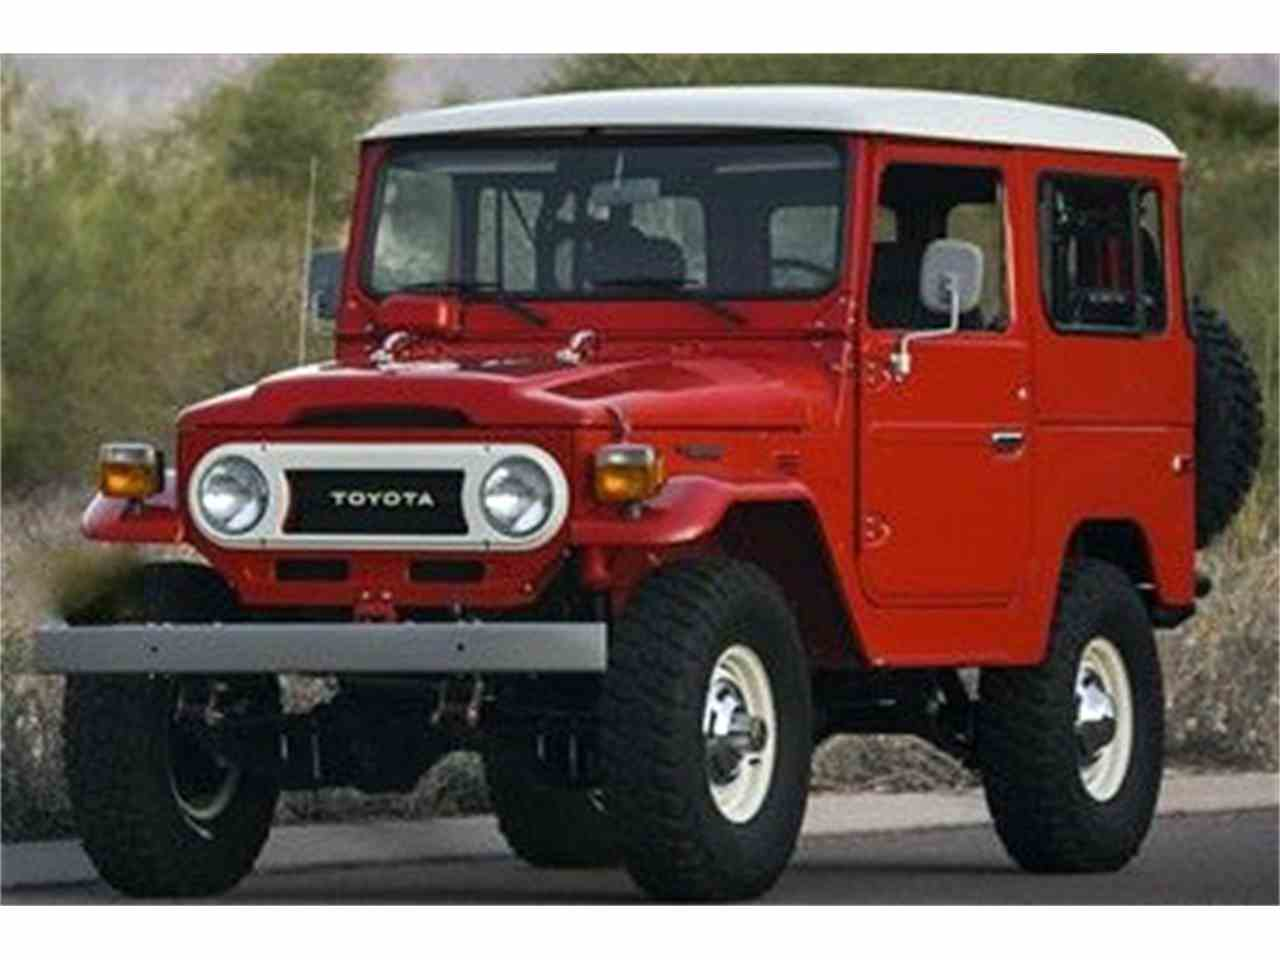 Toyota 1970 Models Ides Dimage De Voiture Land Cruiser 1960 77 1975 To 1977 For Sale On Classiccars